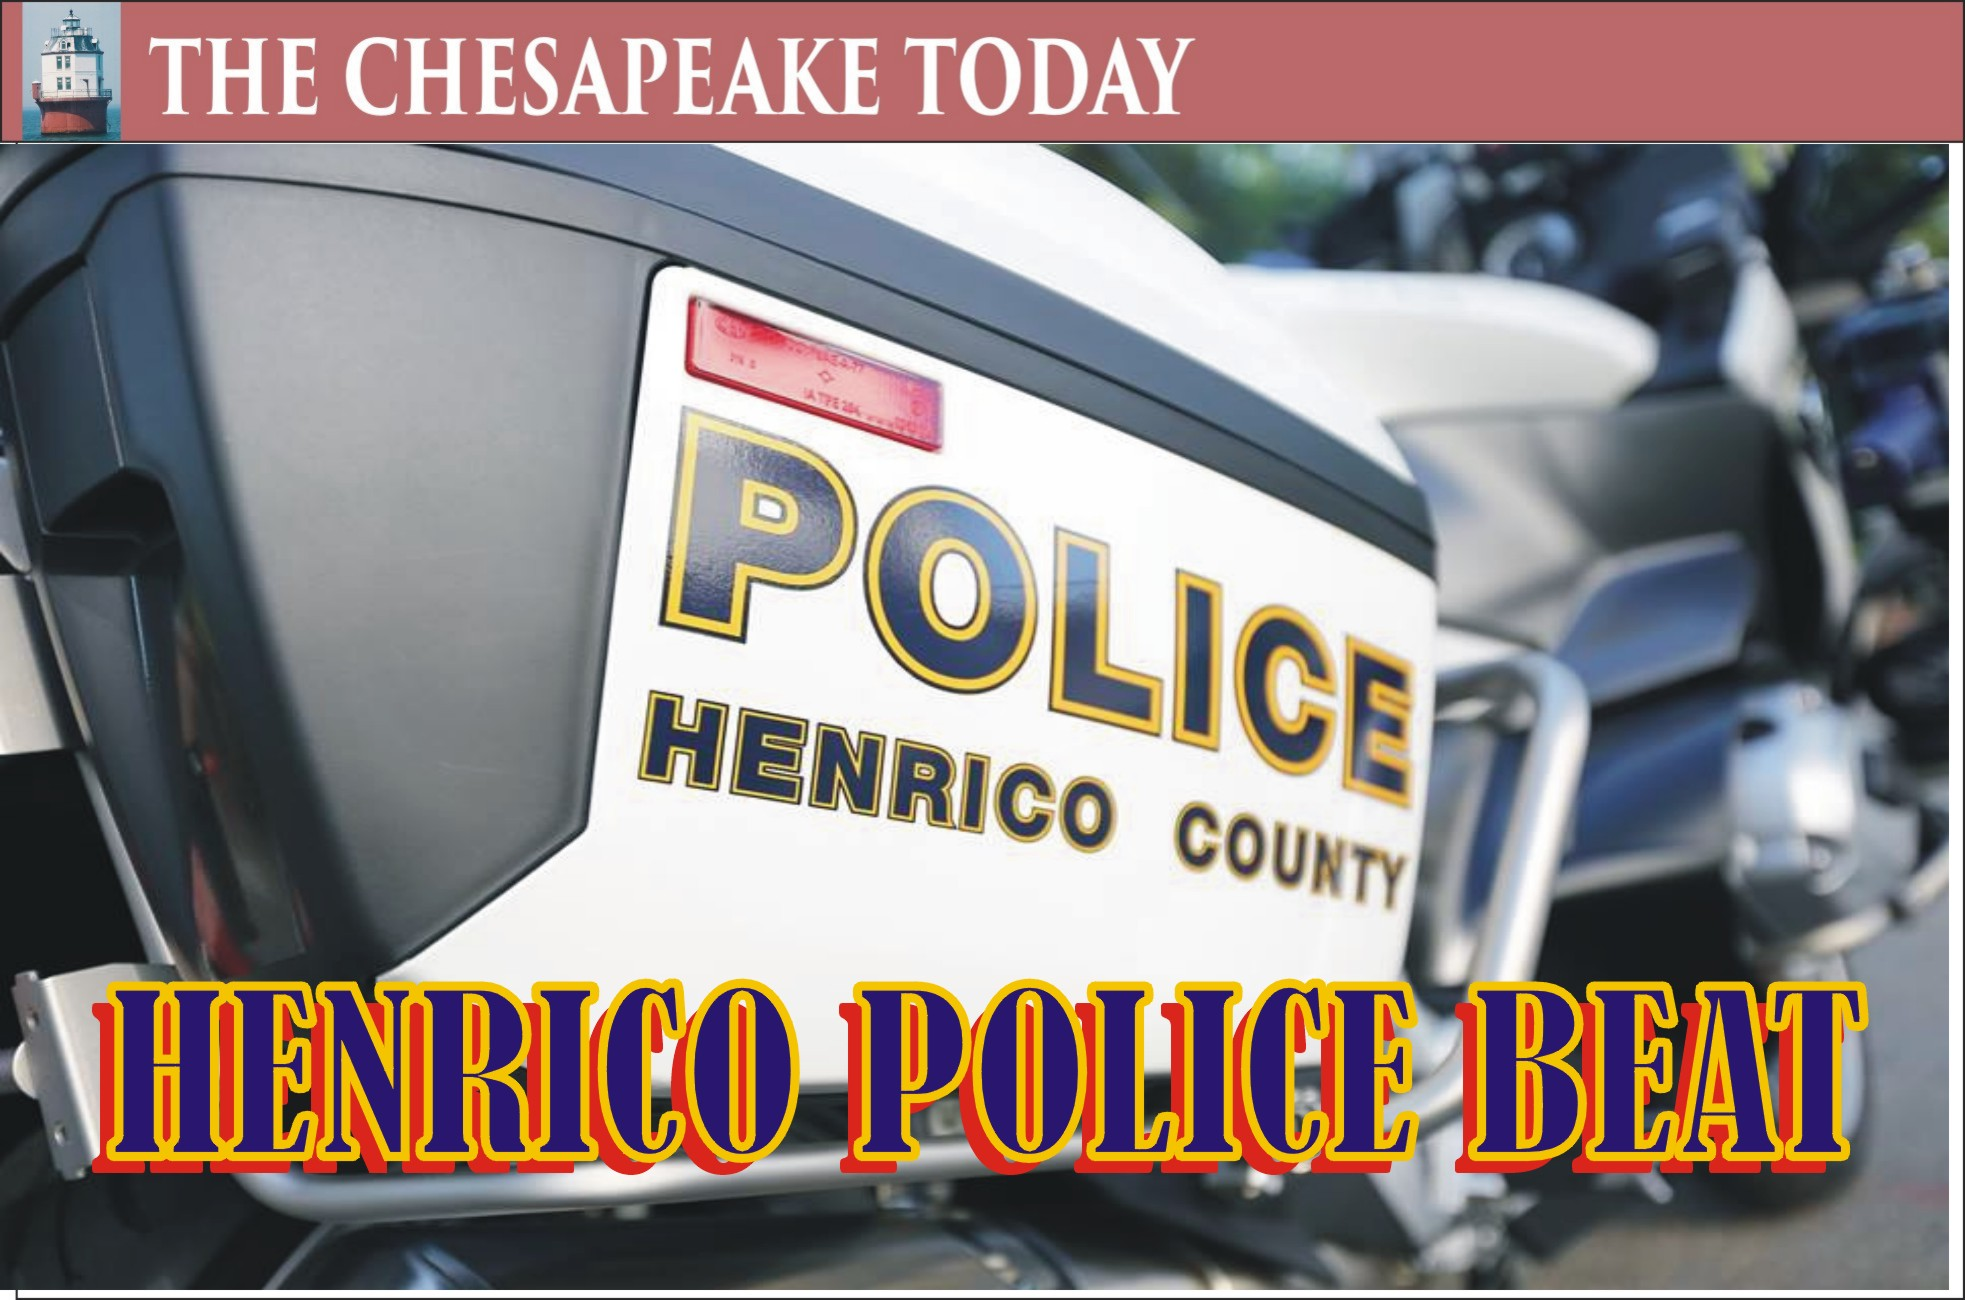 DWI HIT PARADE: Henrico County Police report DWI arrests for July 2019